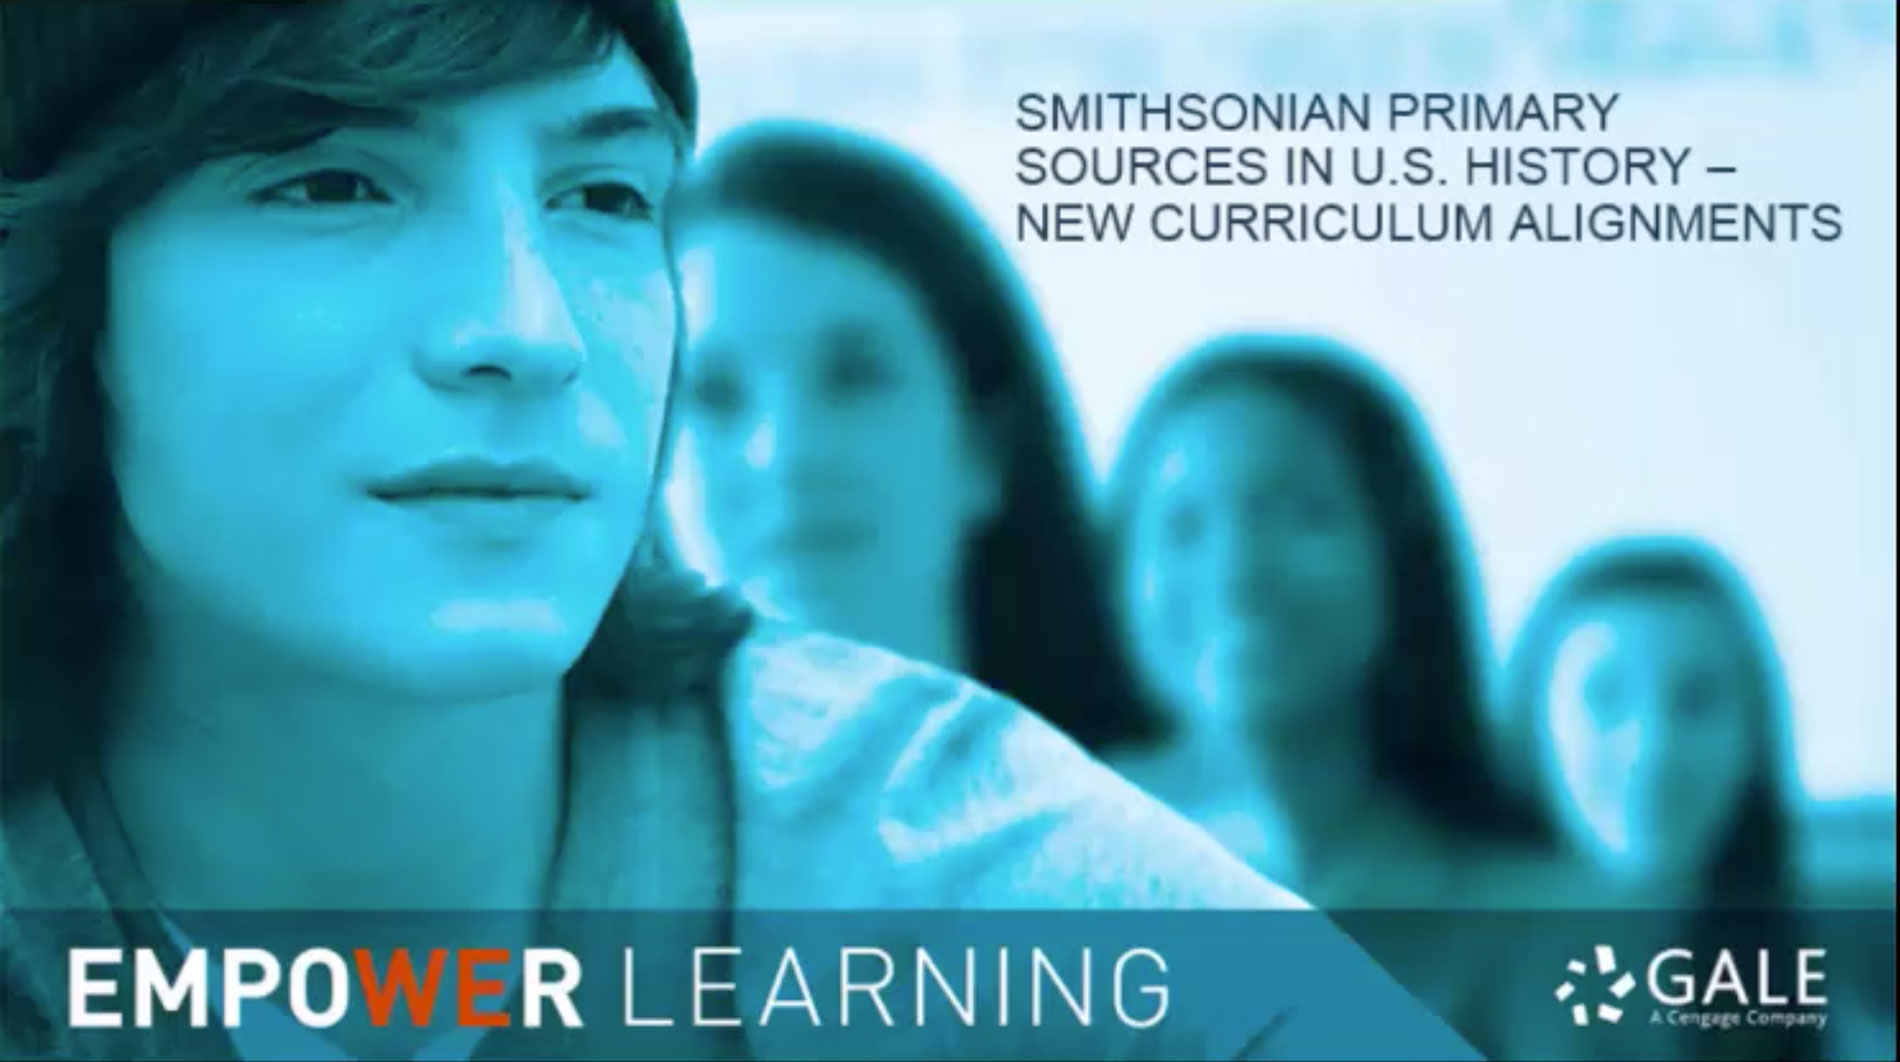 Smithsonian curriculum correlations video.